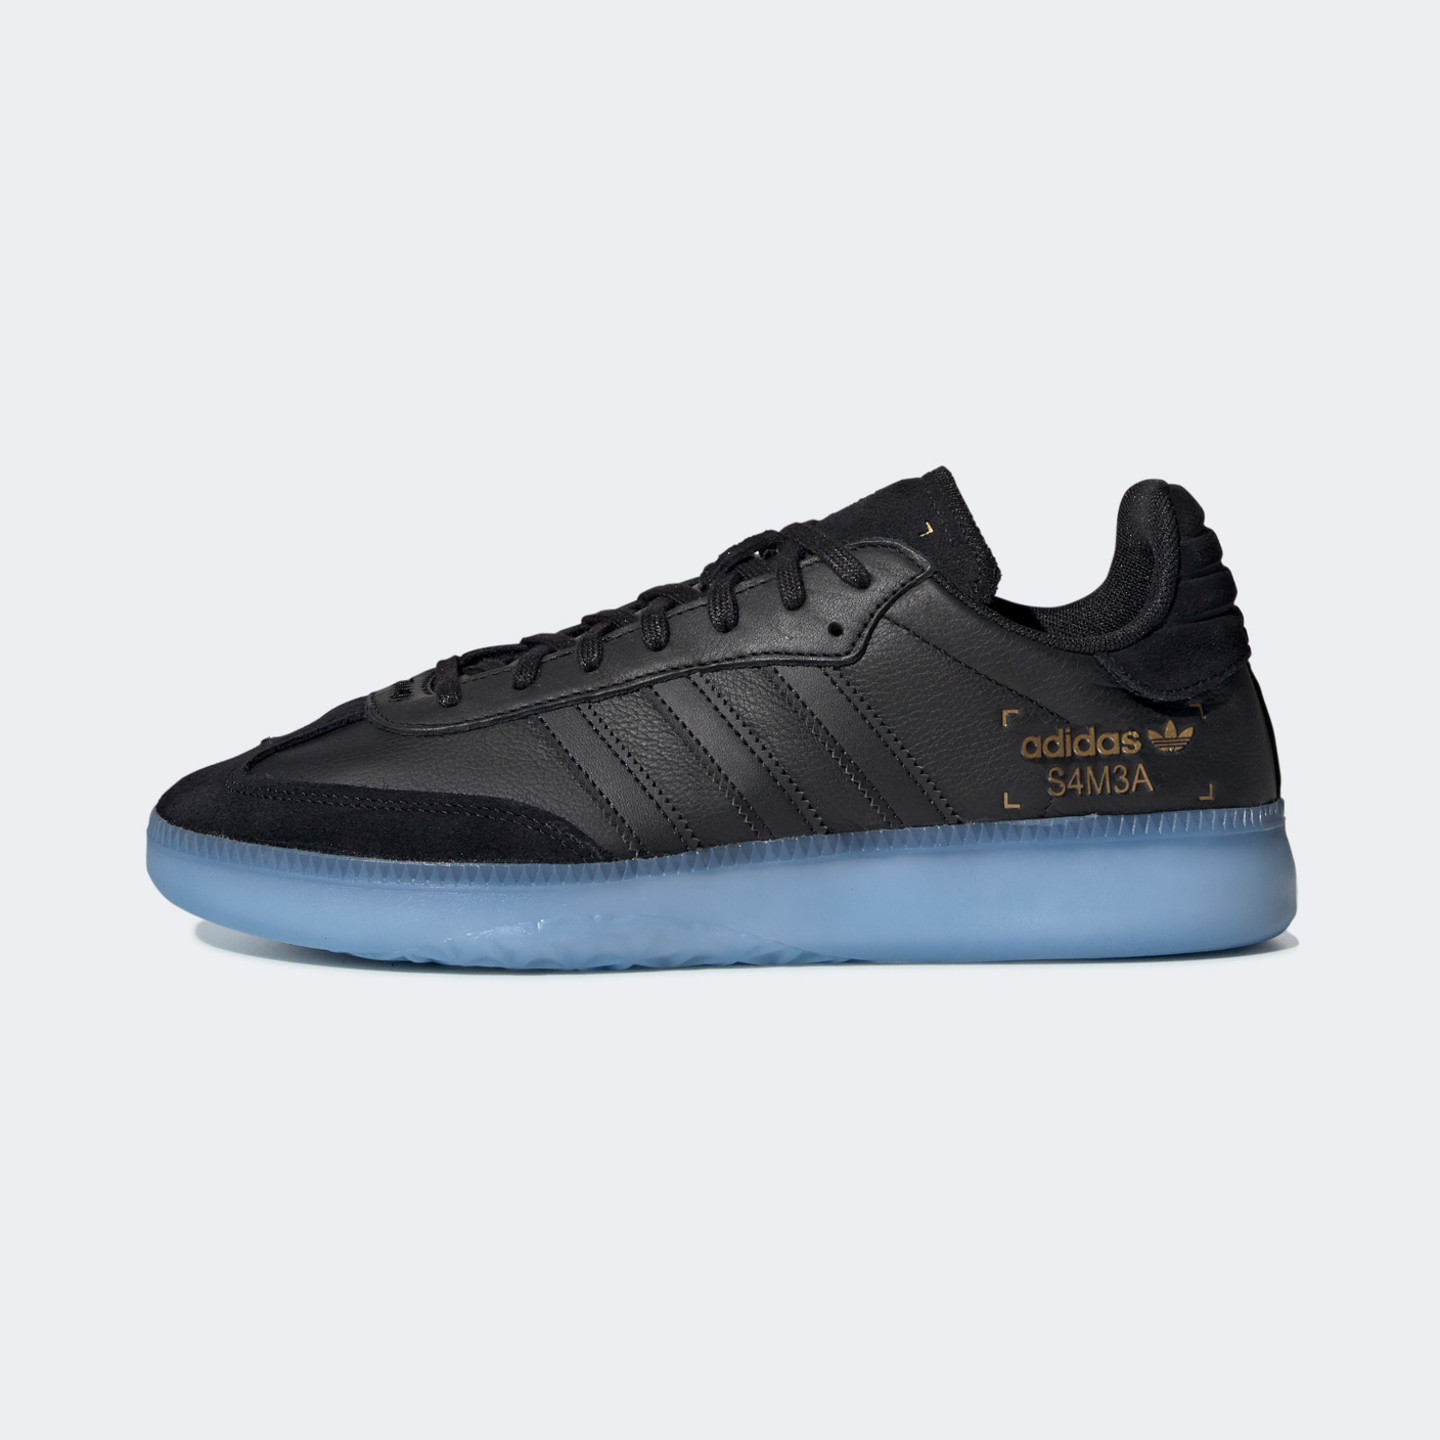 Adidas Samba RM Core Black / Shock Cyan / Gold Metallic BD7476